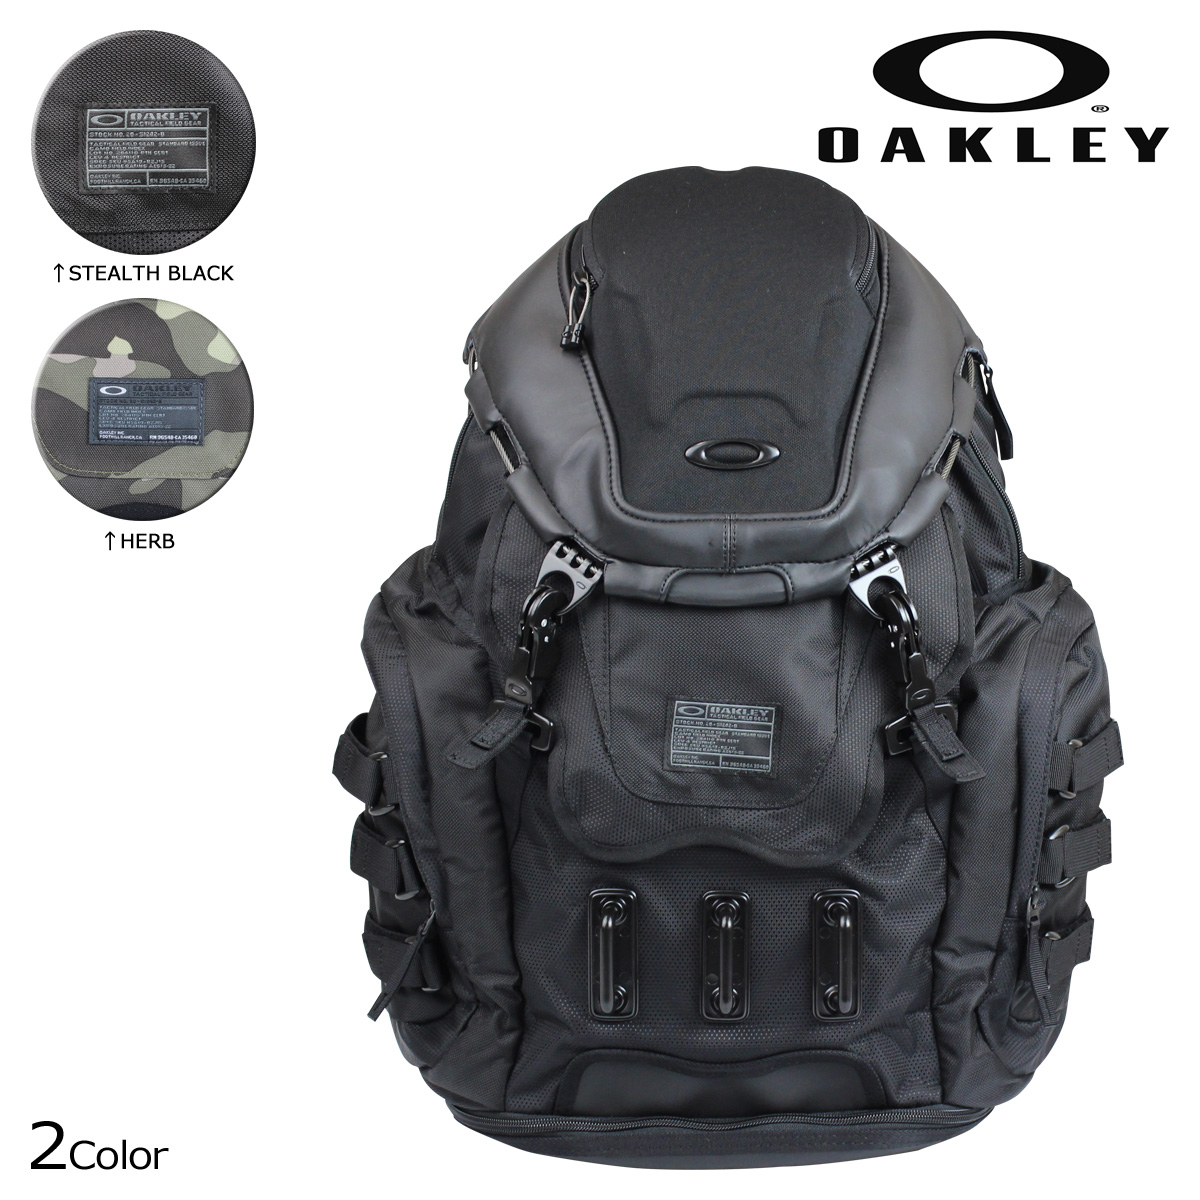 oakley oakley mens backpack rucksack 92060a kitchen sink 99 new in stock - Kitchen Sink Oakley